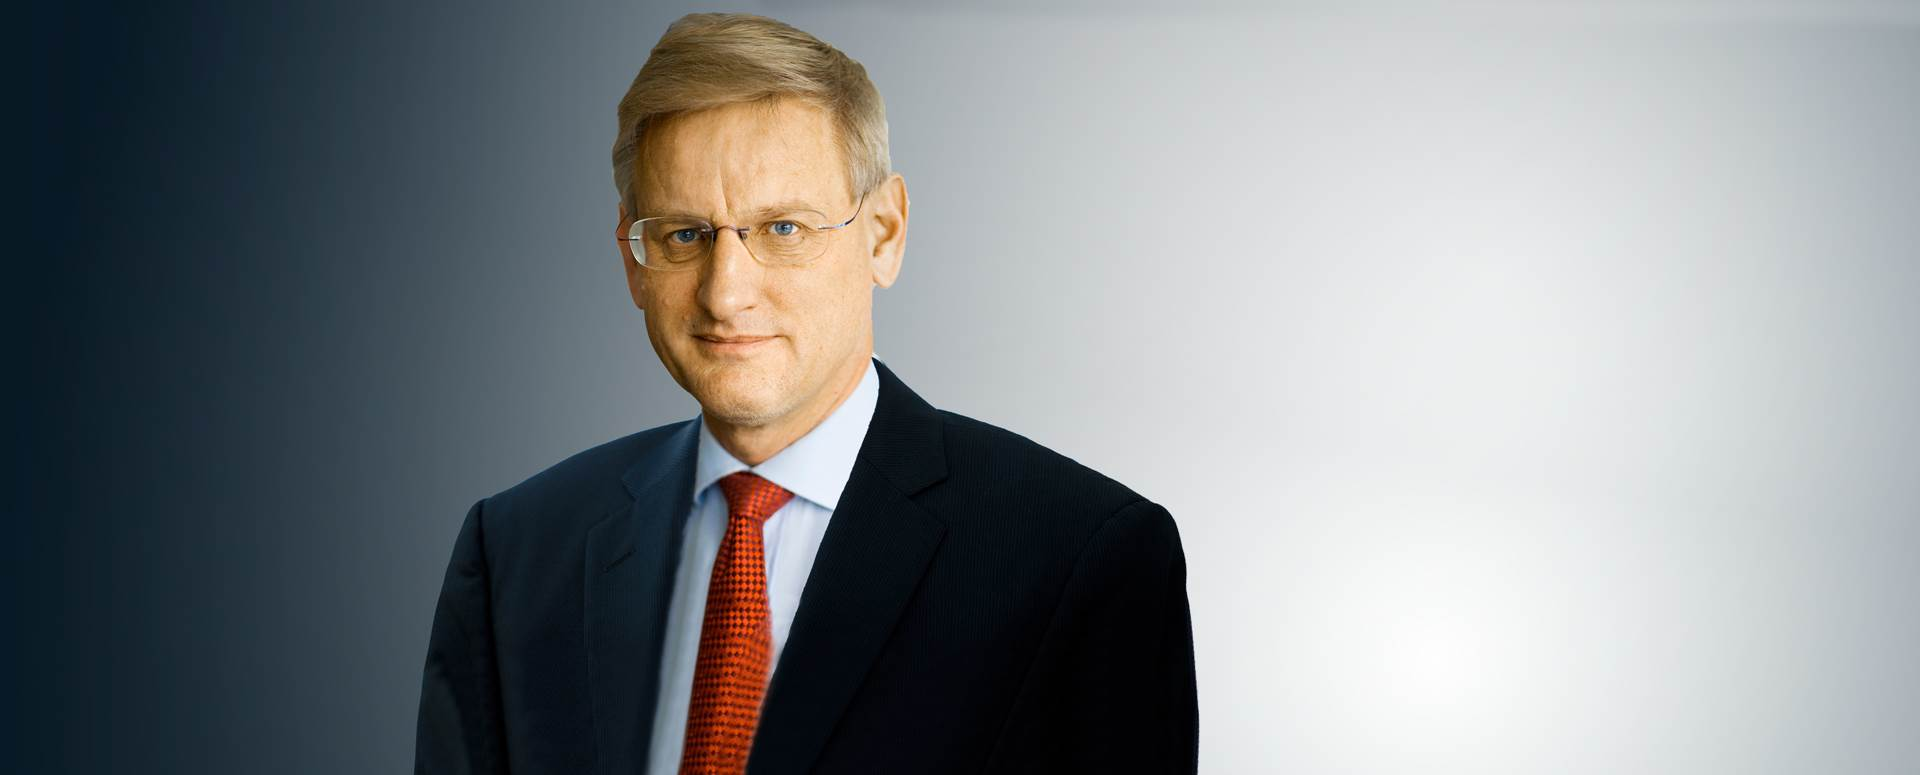 Book Carl Bildt for Speaking, Events and Appearances | APB Speakers